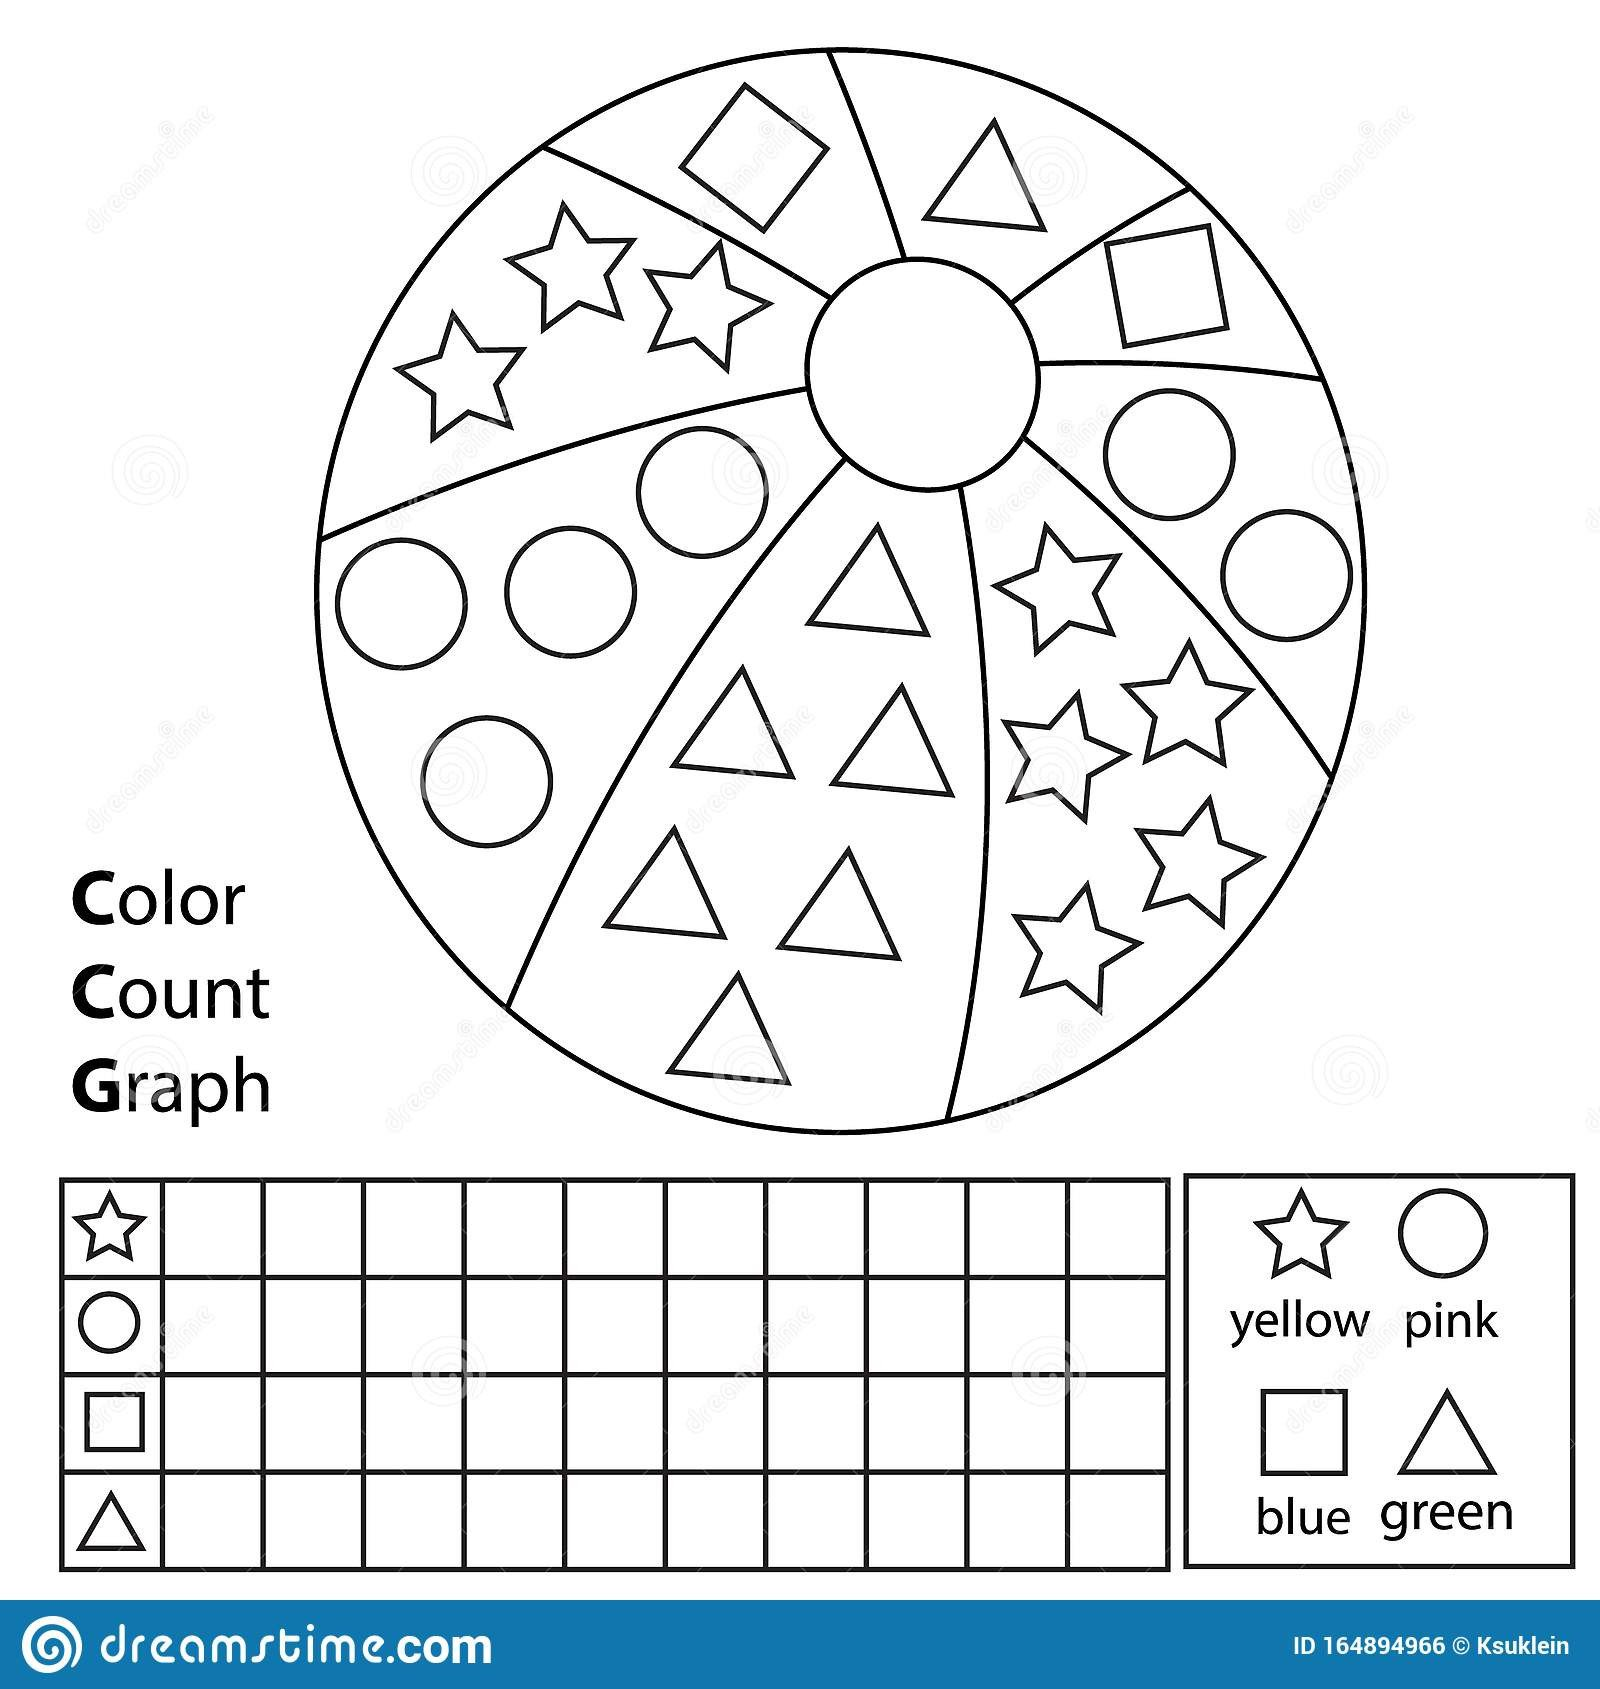 Shapes Worksheet for Kindergarten Color Worksheets for toddlers Count Graph Educational